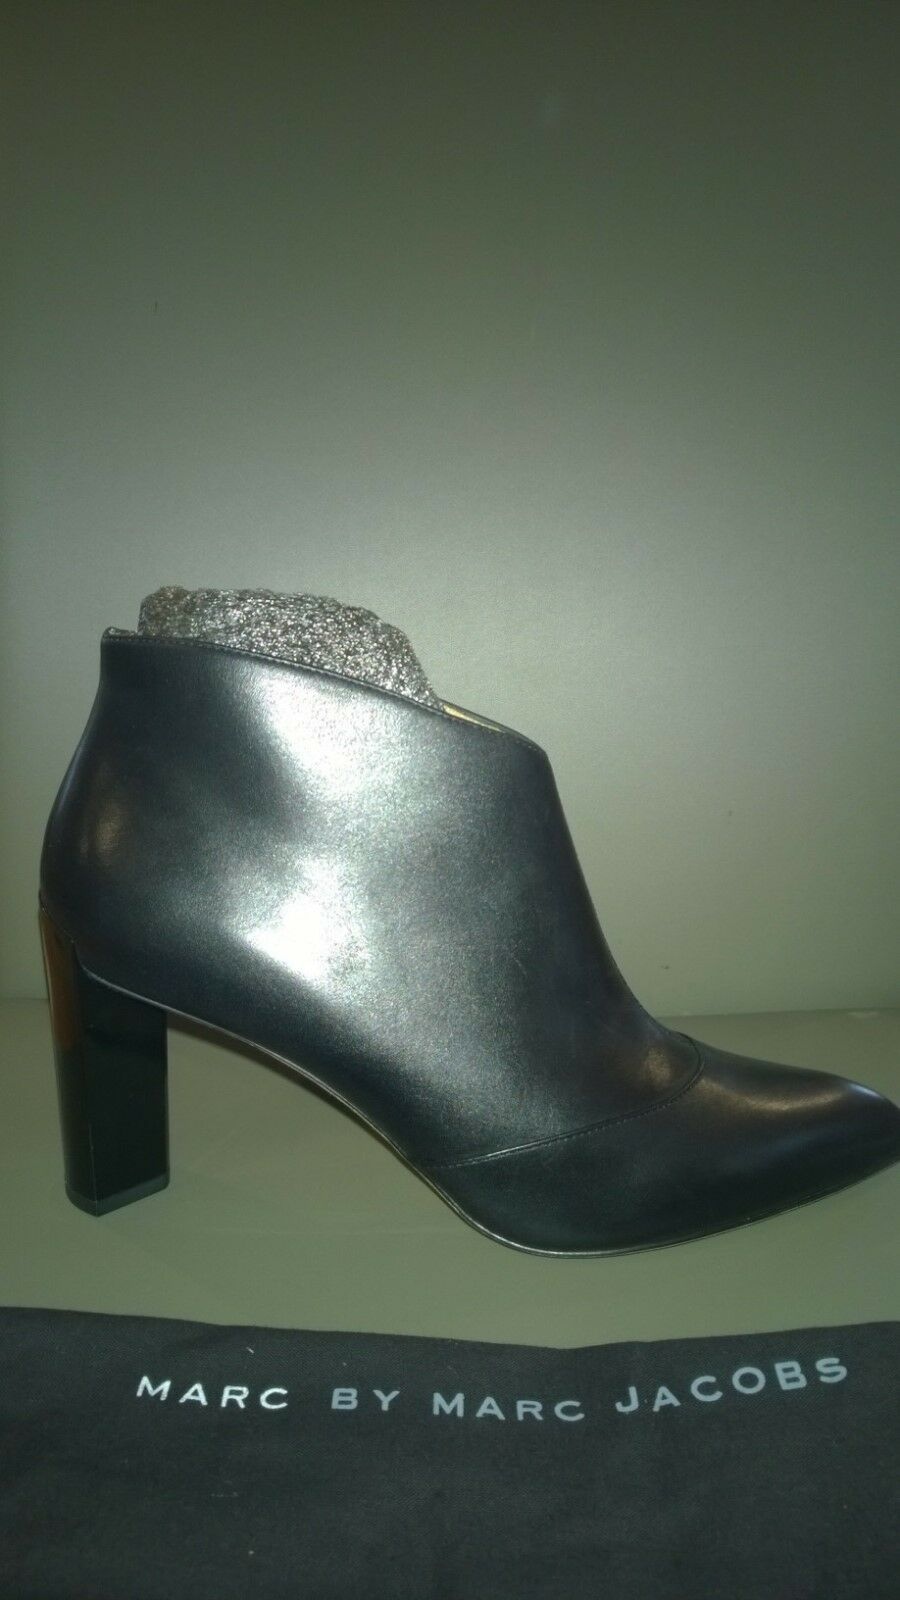 Marc By Marc Jacobs All Angles Ankle Black Leather Boots, Size 40 / US 10